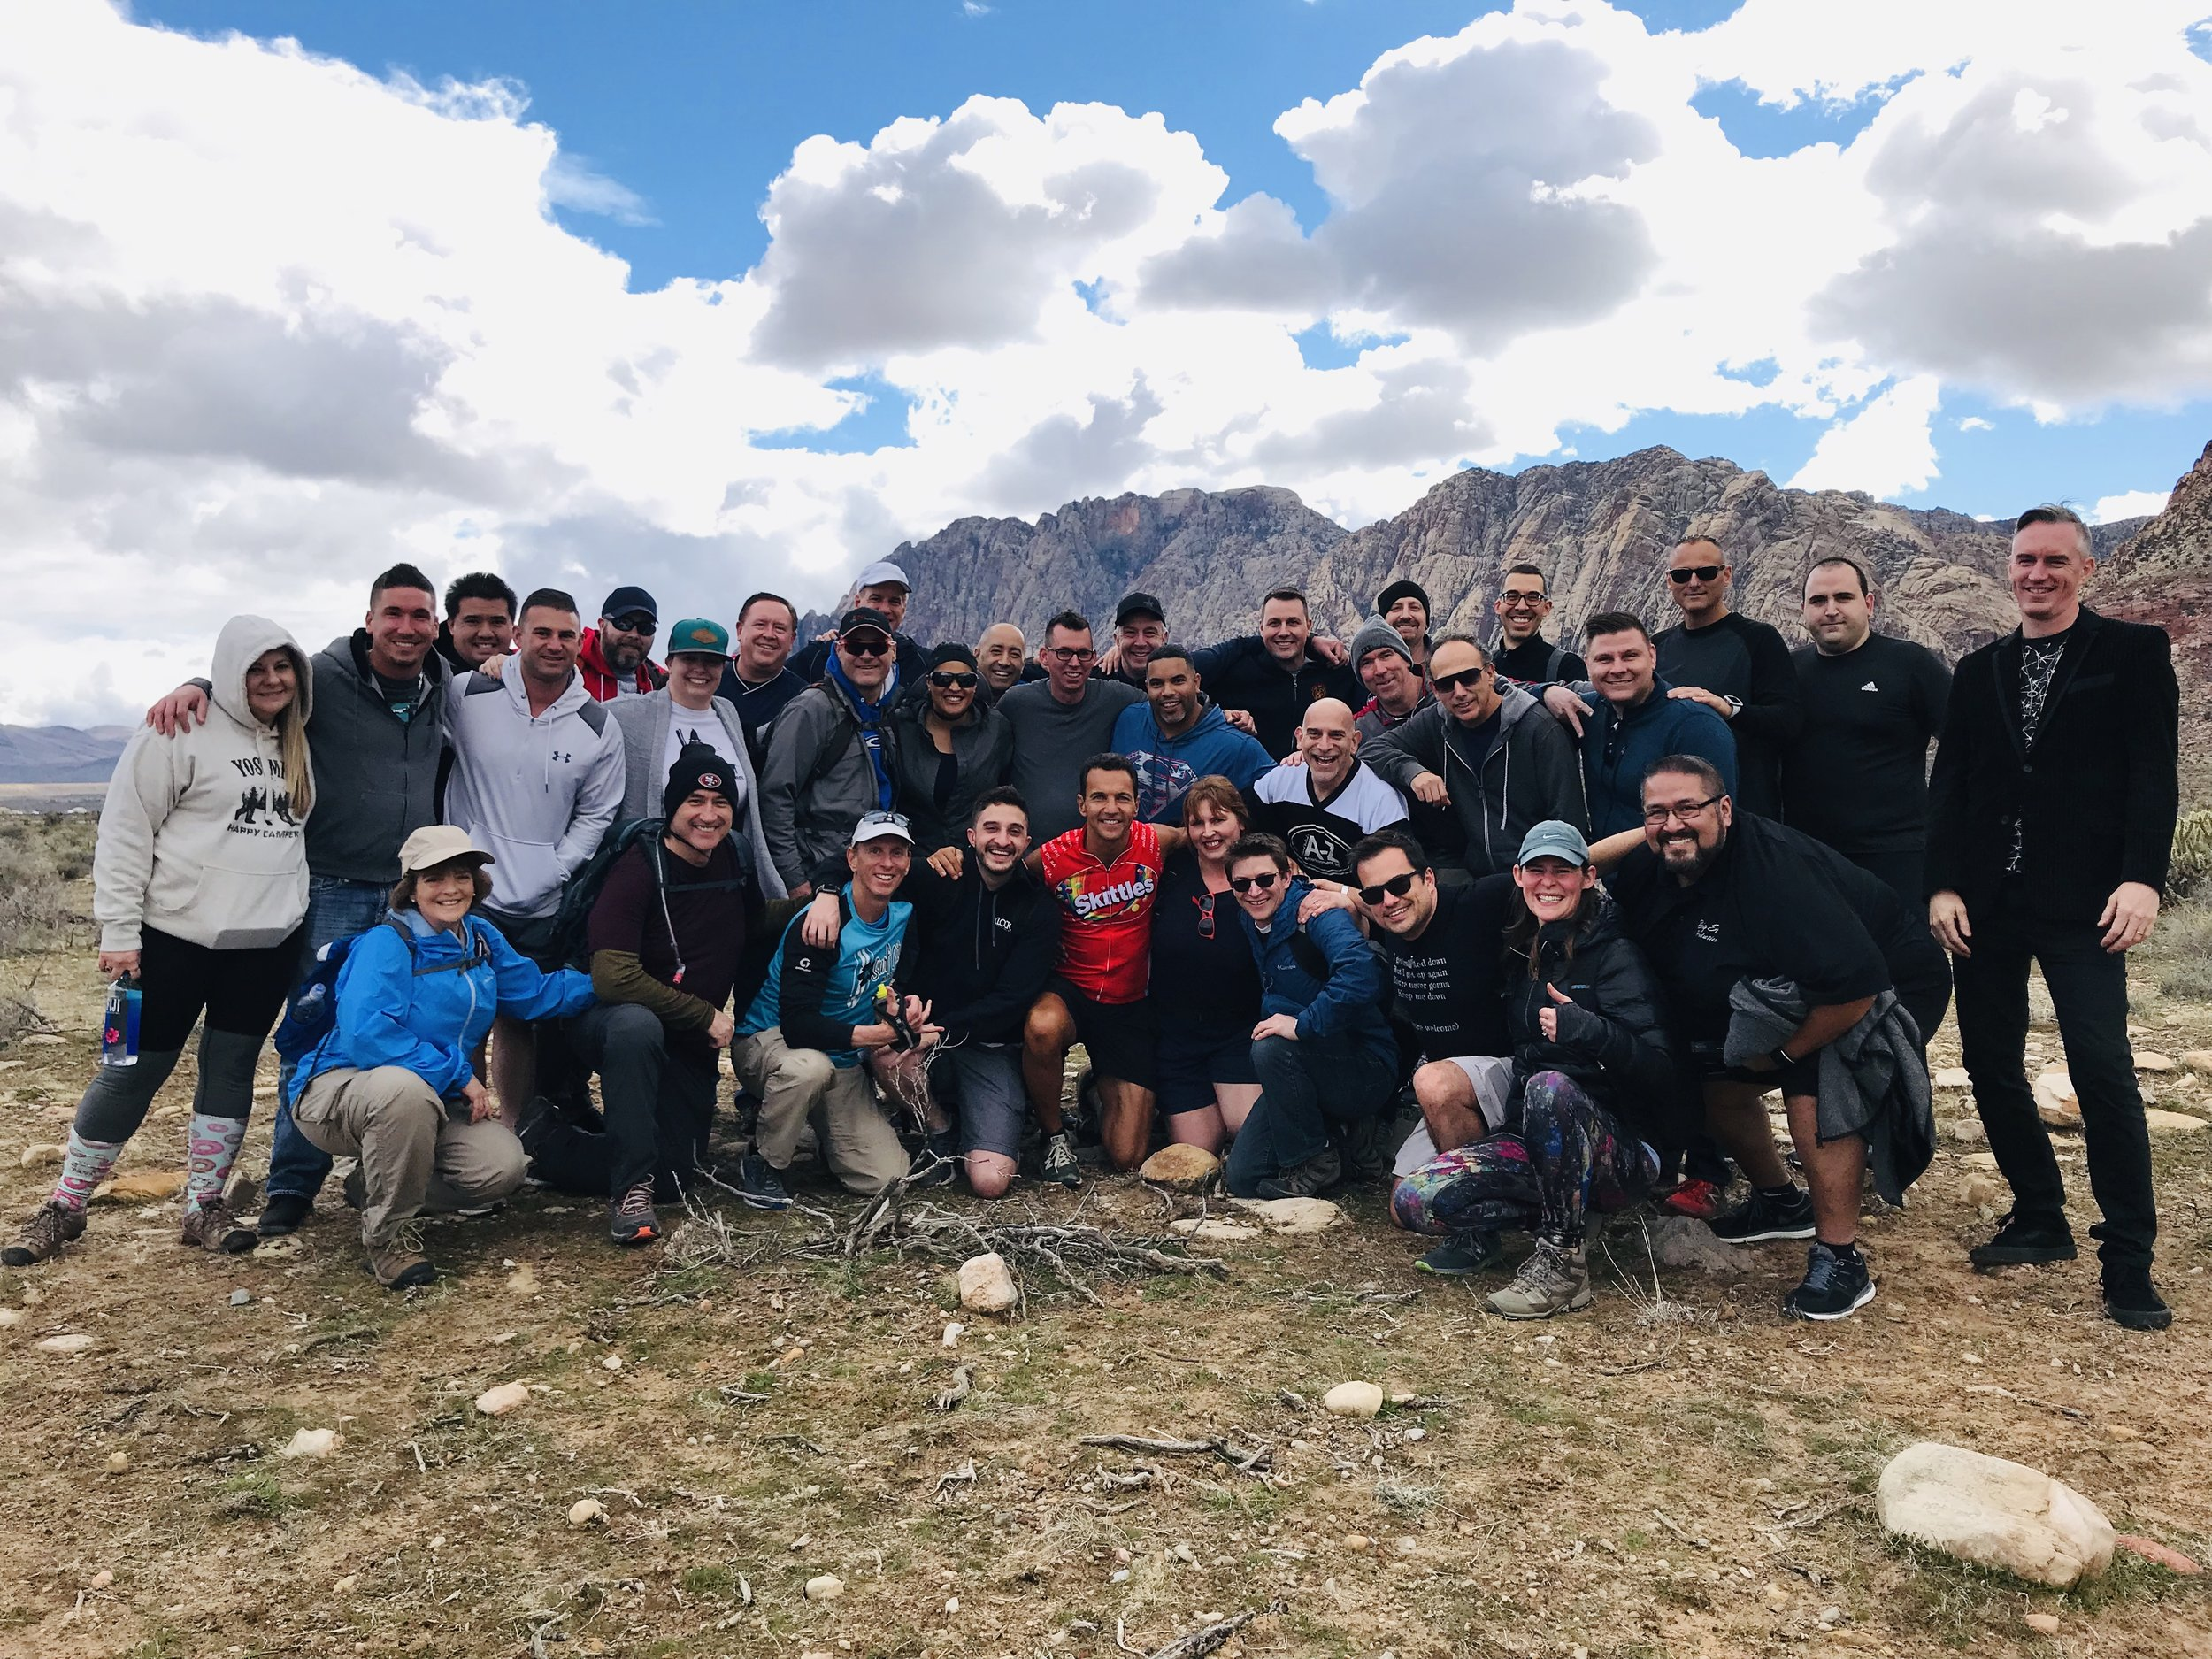 The 2019 Celebrate Life Hike at Red Rock with Marcello Pedalino and Friends